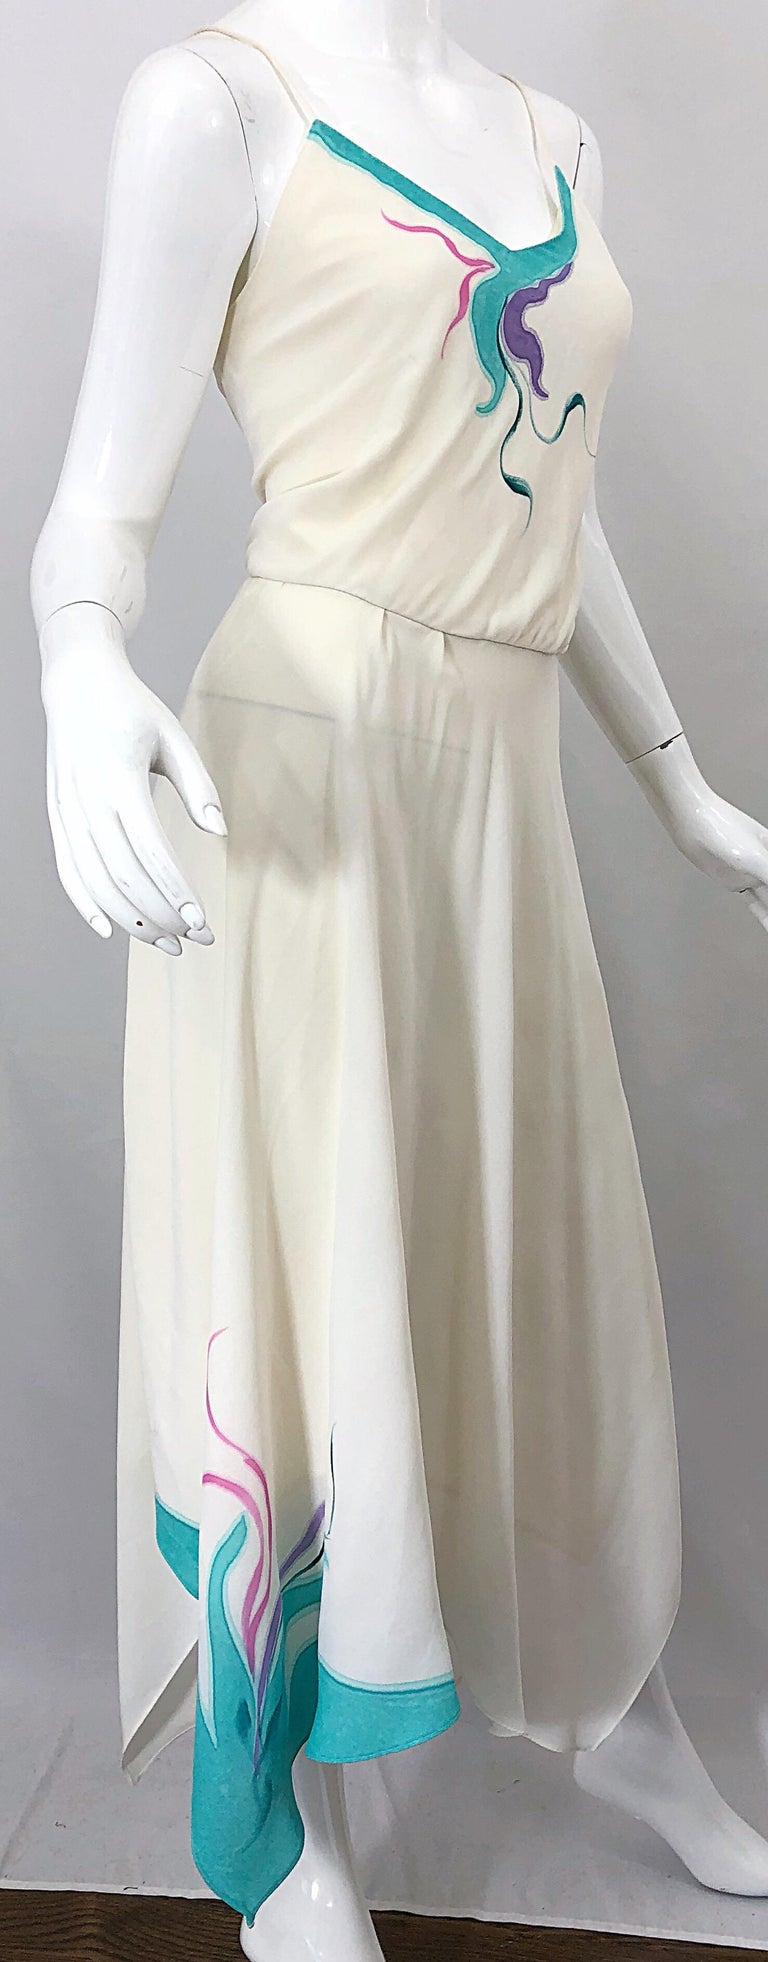 1970s Amazing Handkerchief Hem Ivory + Purple + Pink + Blue Slinky Vintage Dress In Excellent Condition For Sale In Chicago, IL